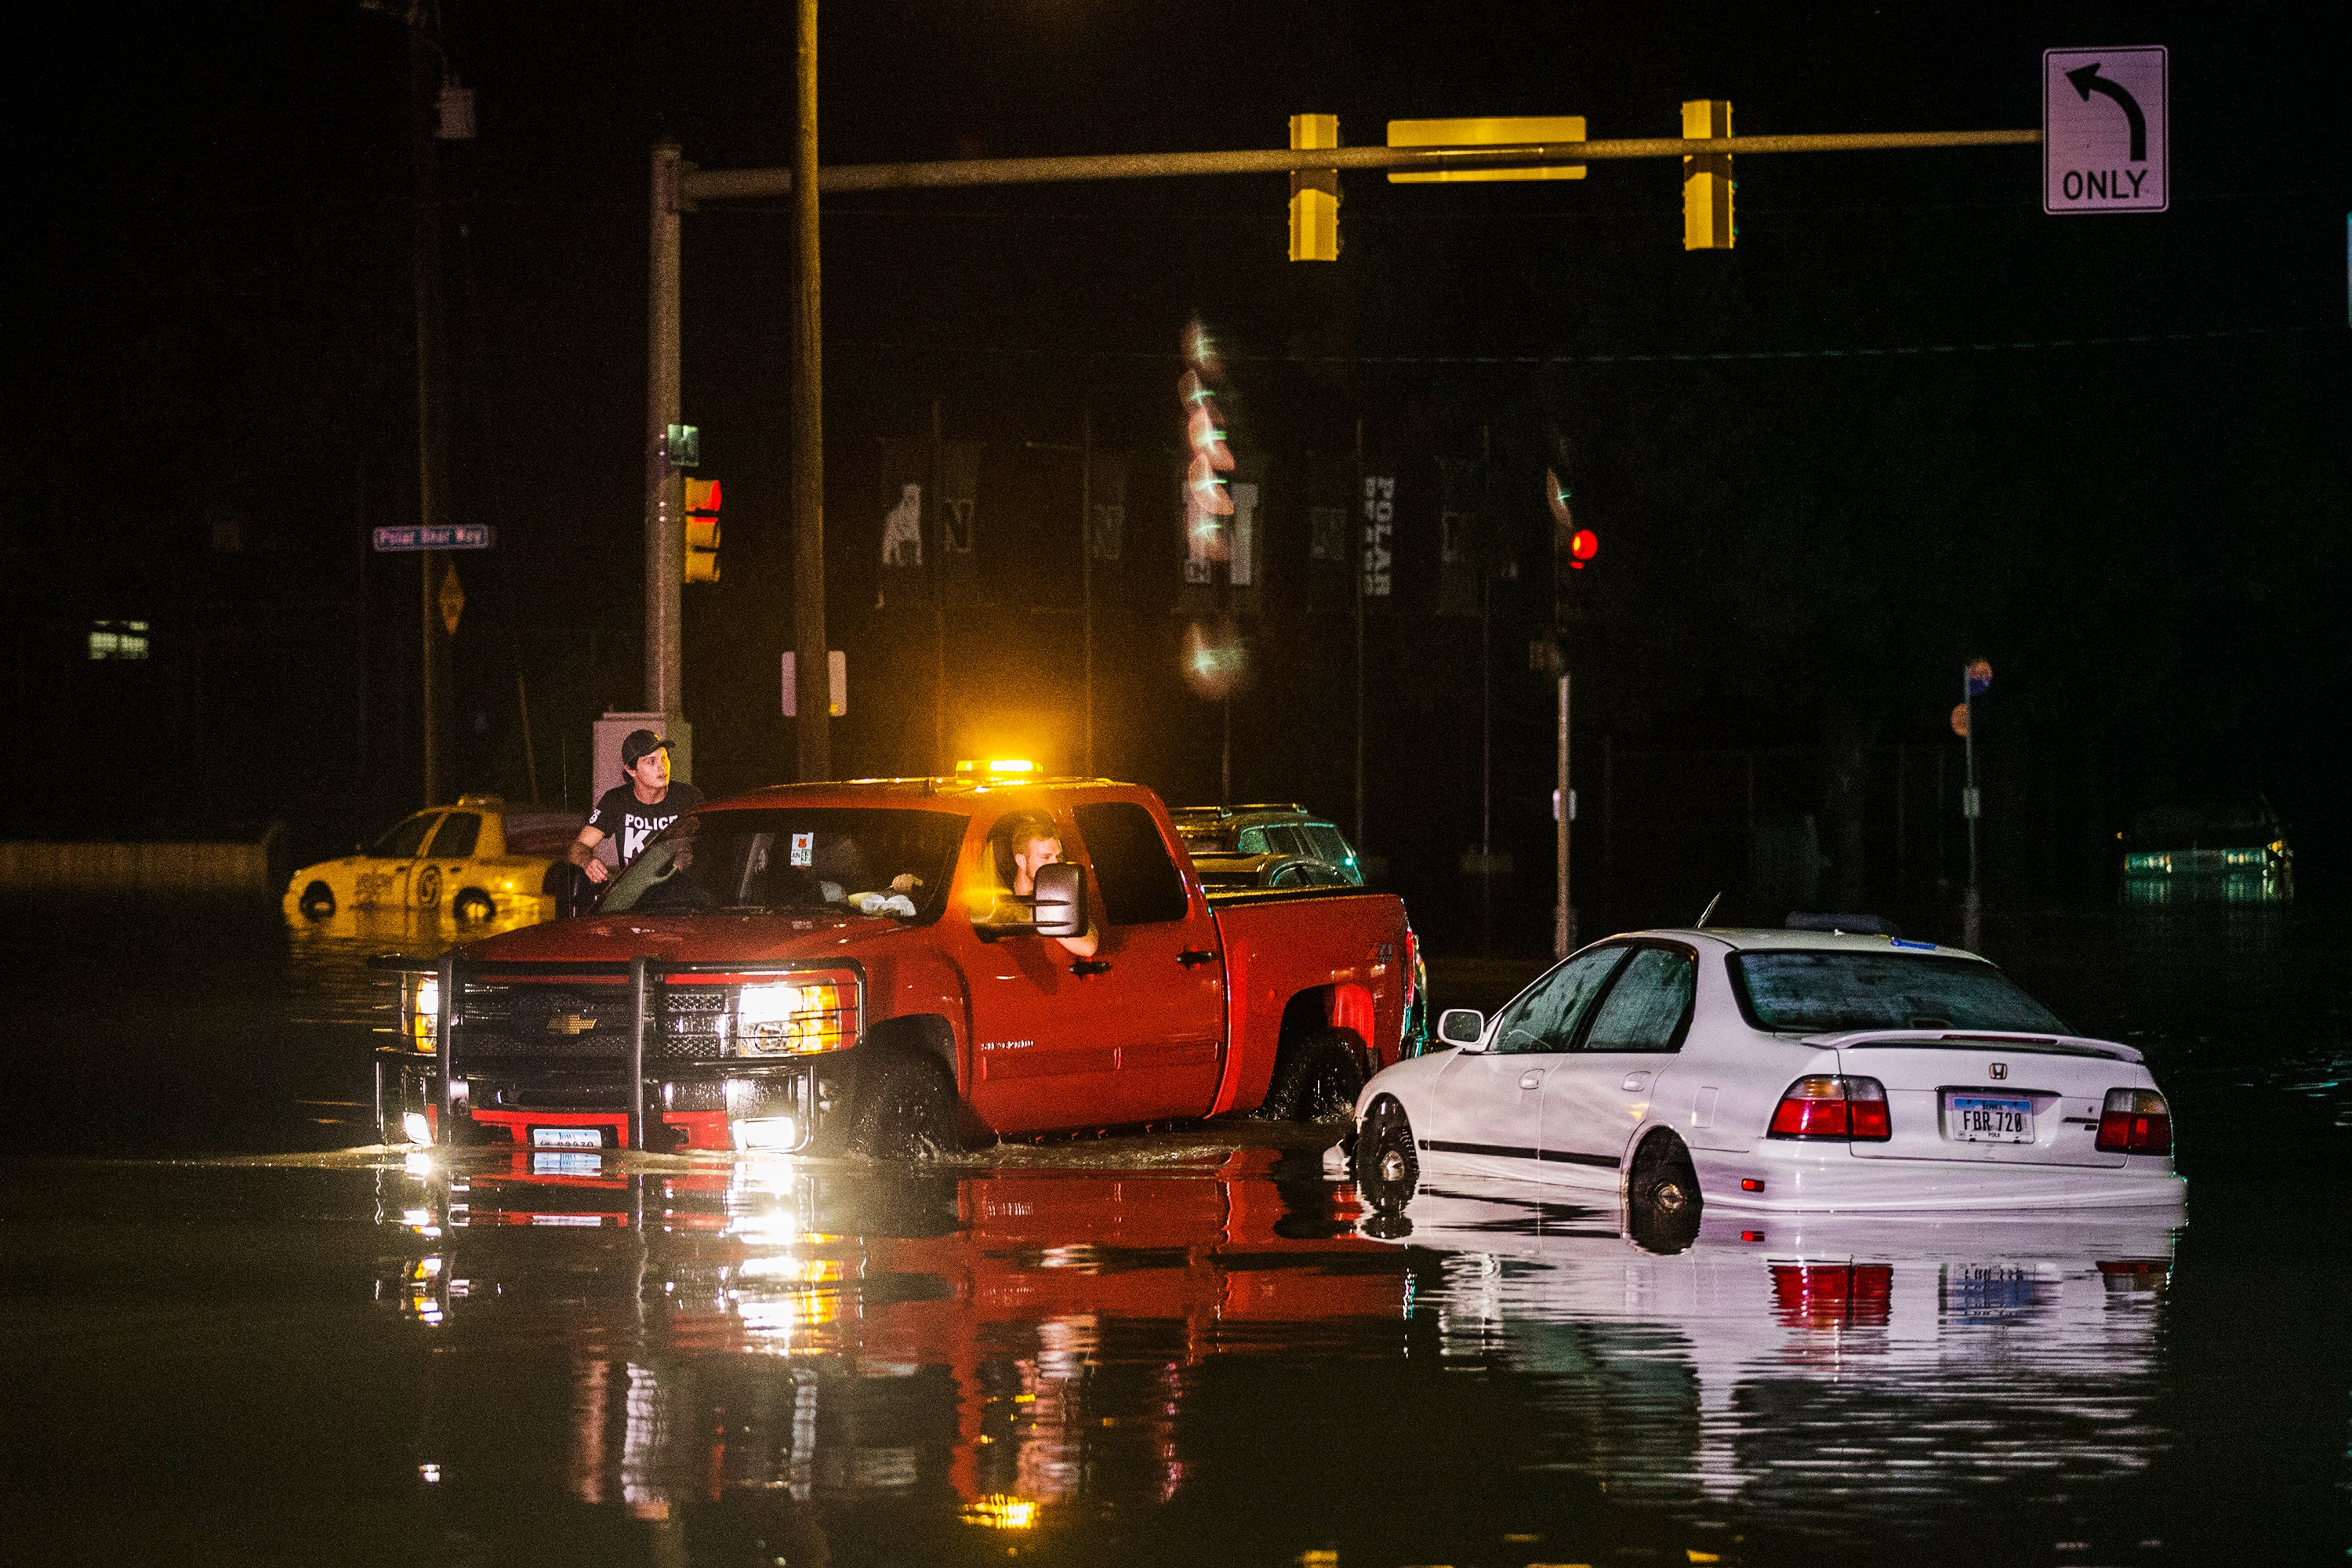 http://www.desmoinesregister.com/picture-gallery/weather/2018/07/03 ...